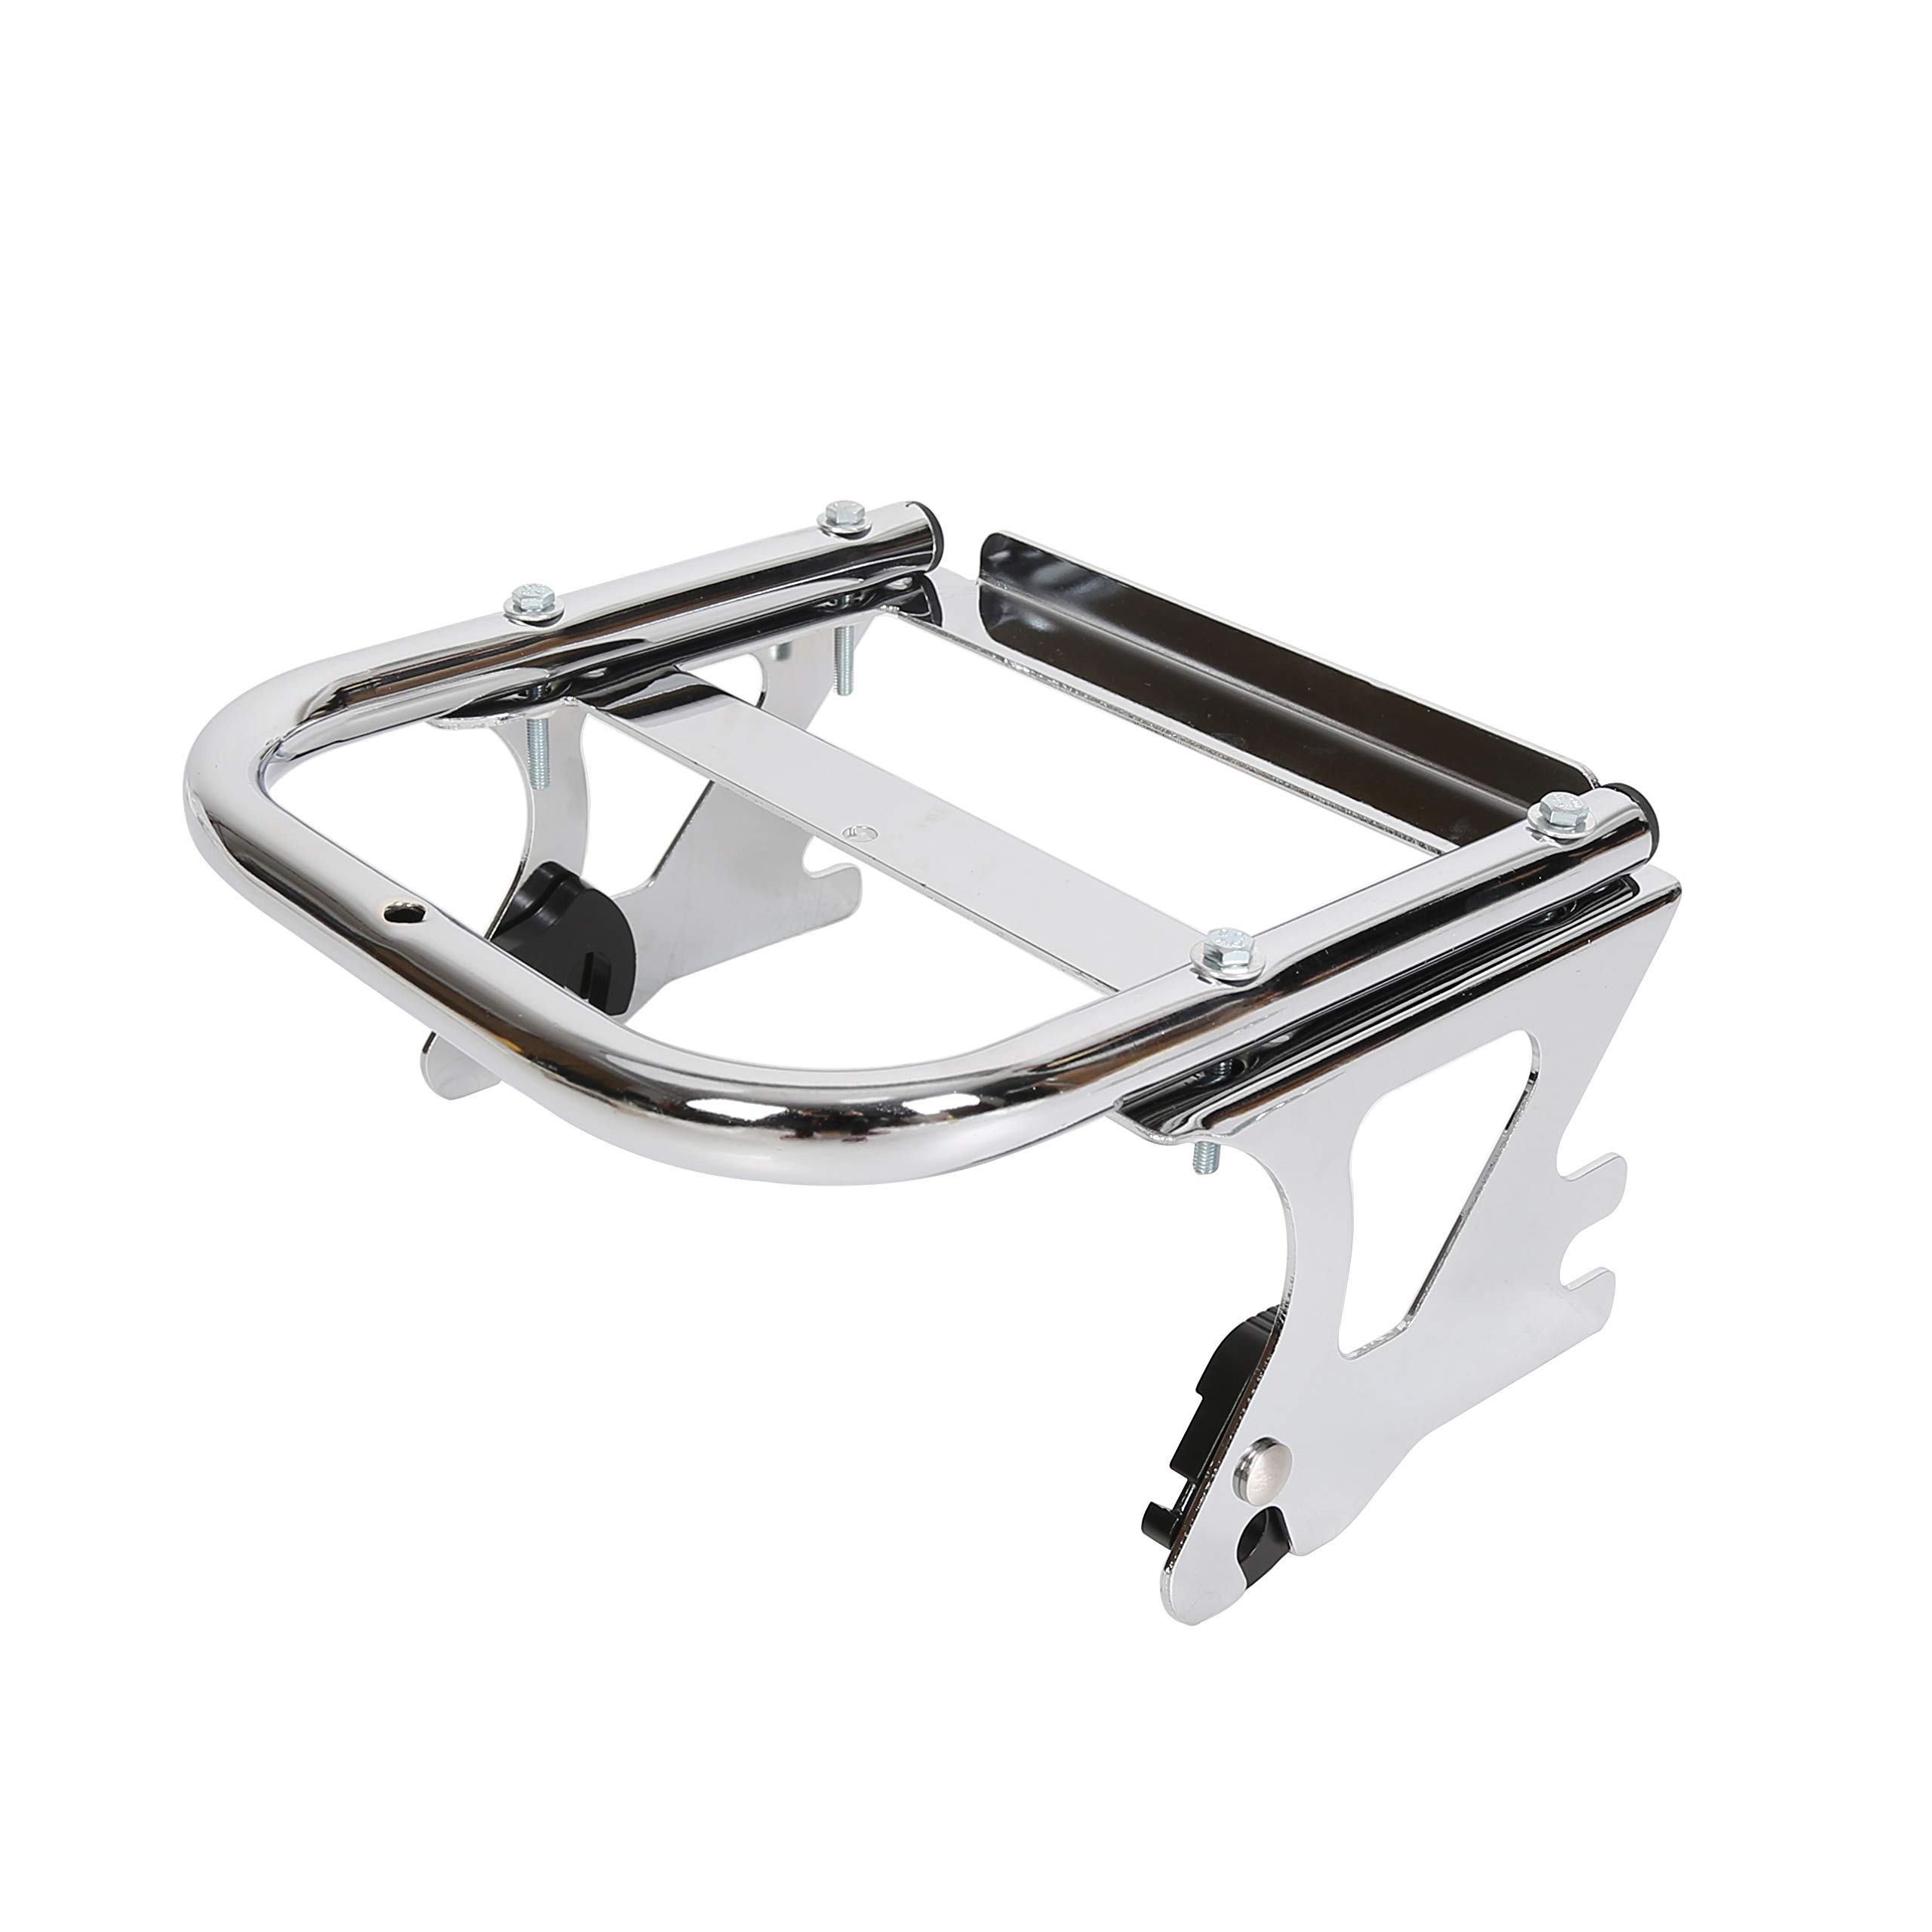 EGO BIKE Detachable Two-up Tour Pak Pack Mounting Luggage Rack for Harley Touring 97-08